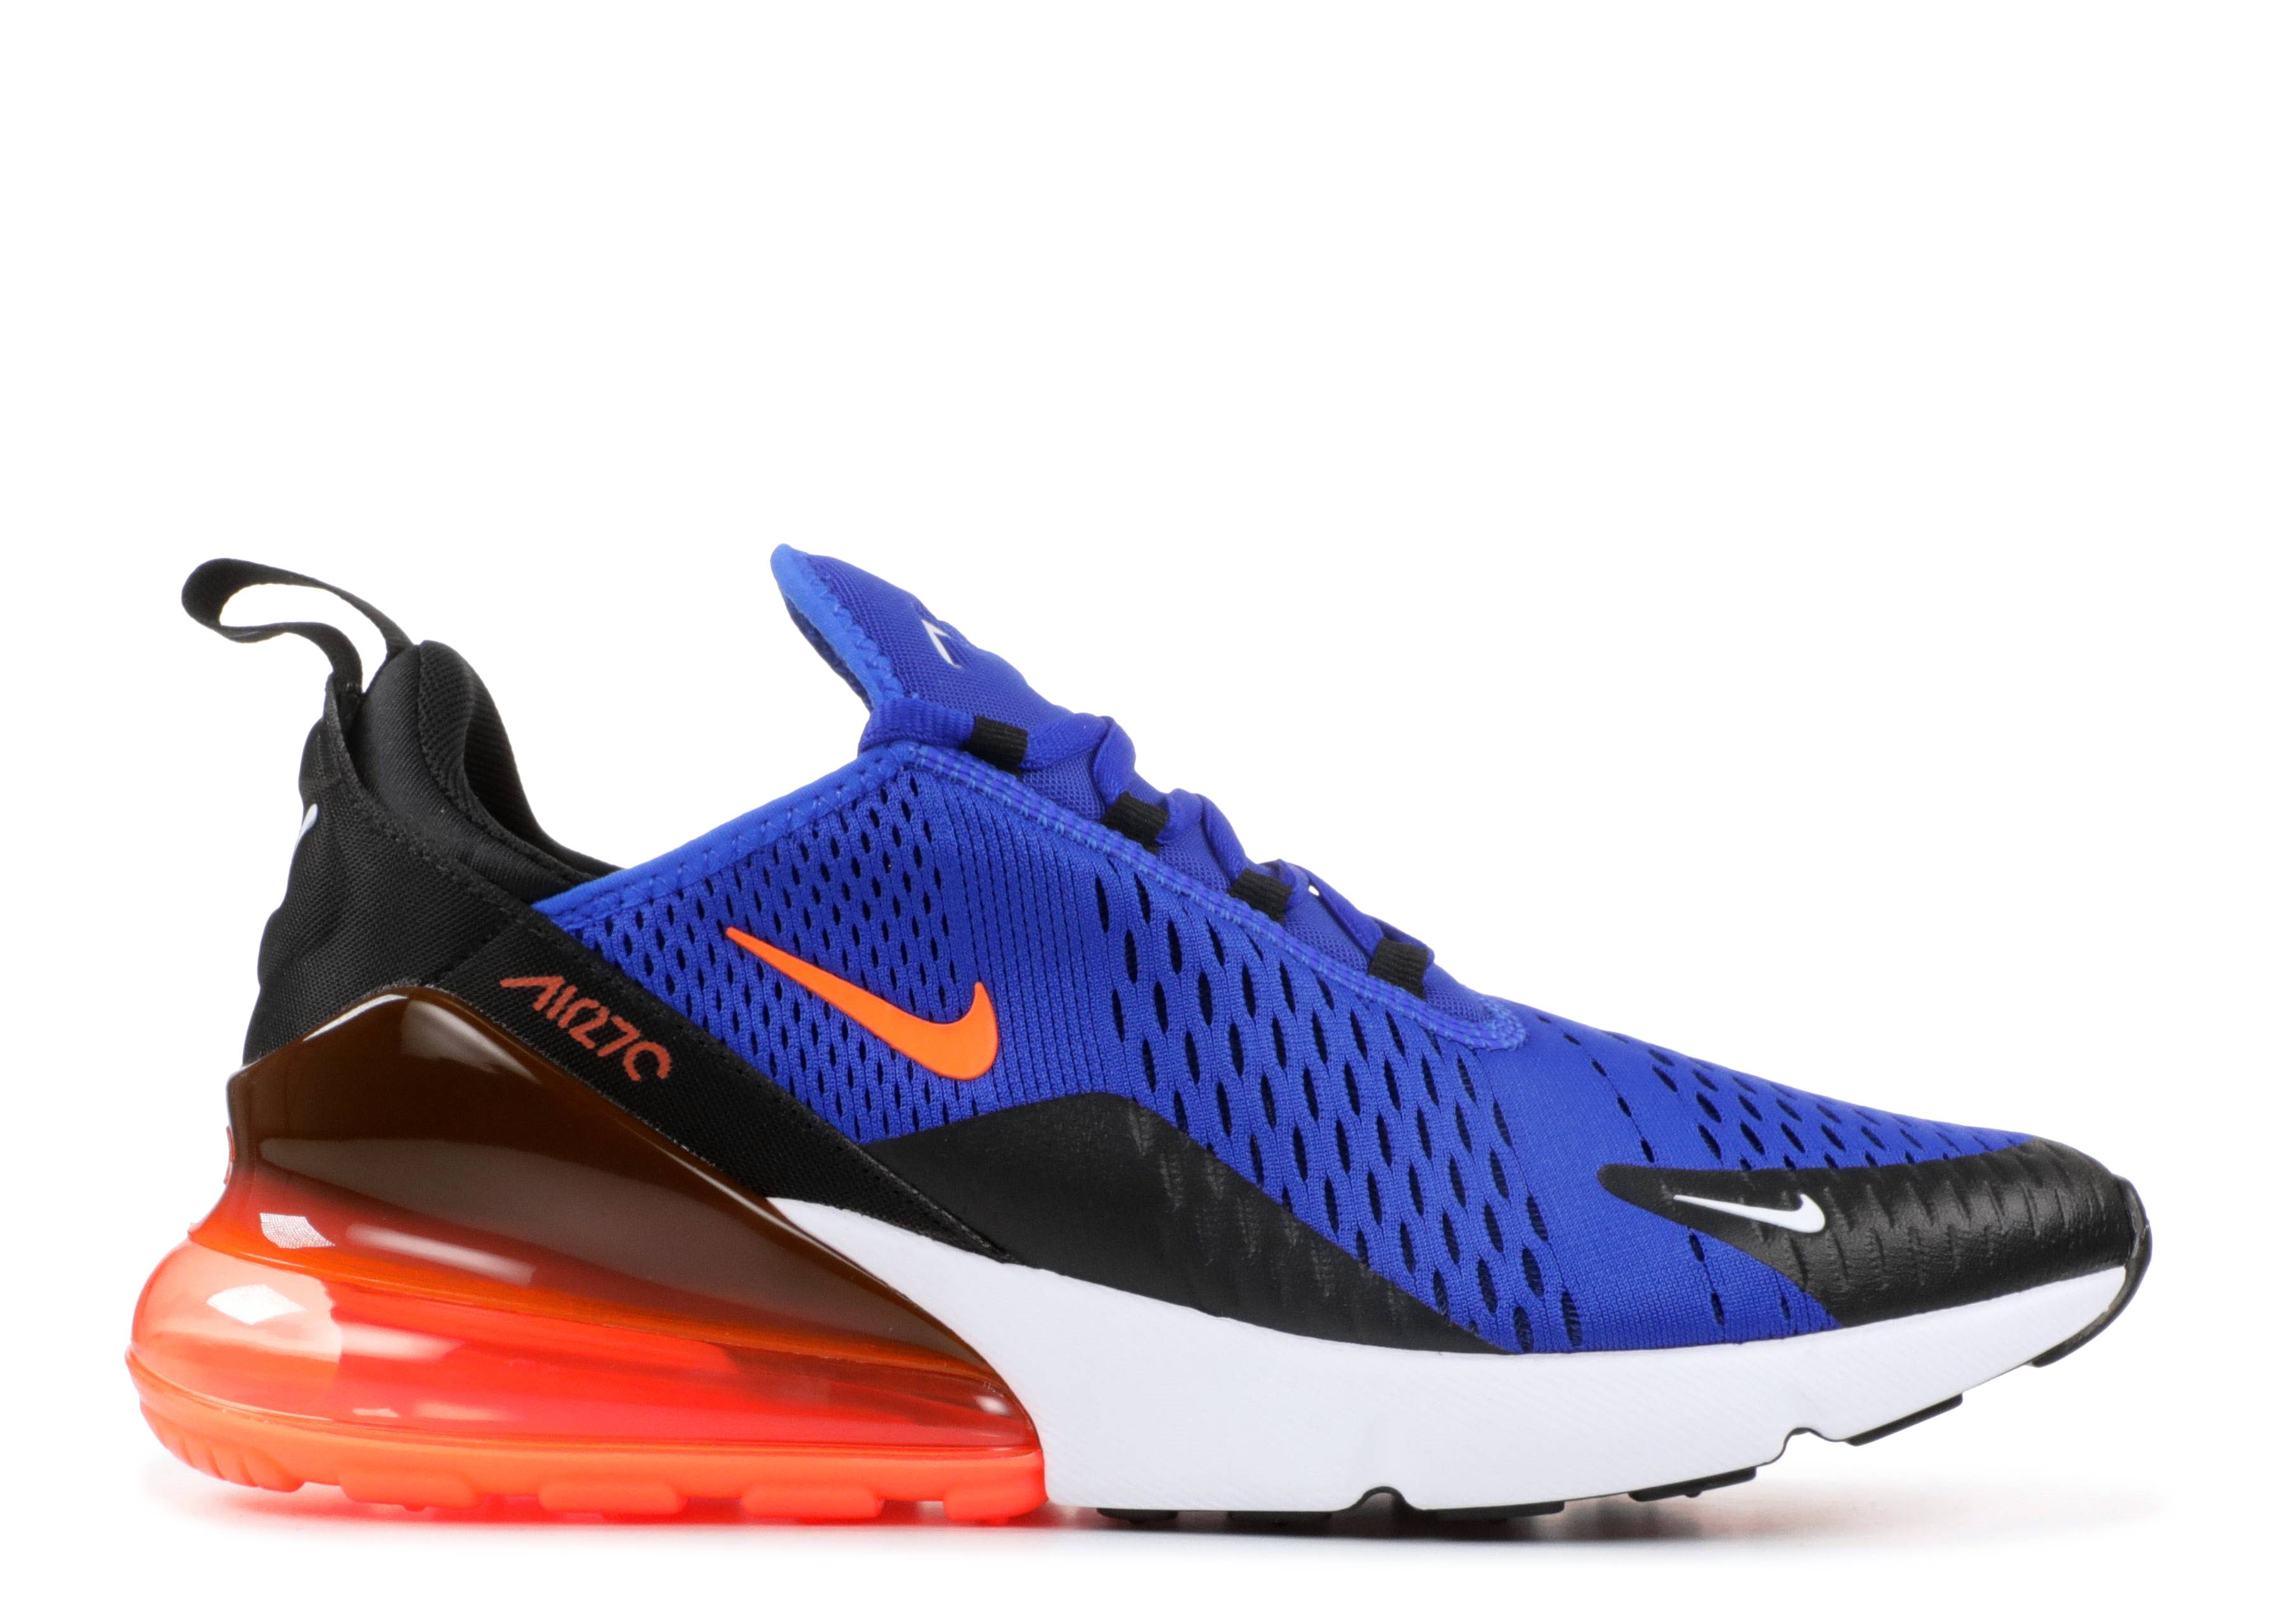 a0a8a45780 Air Max 270 - Nike - ah8050 401 - racer blue/hyper crimson-black ...